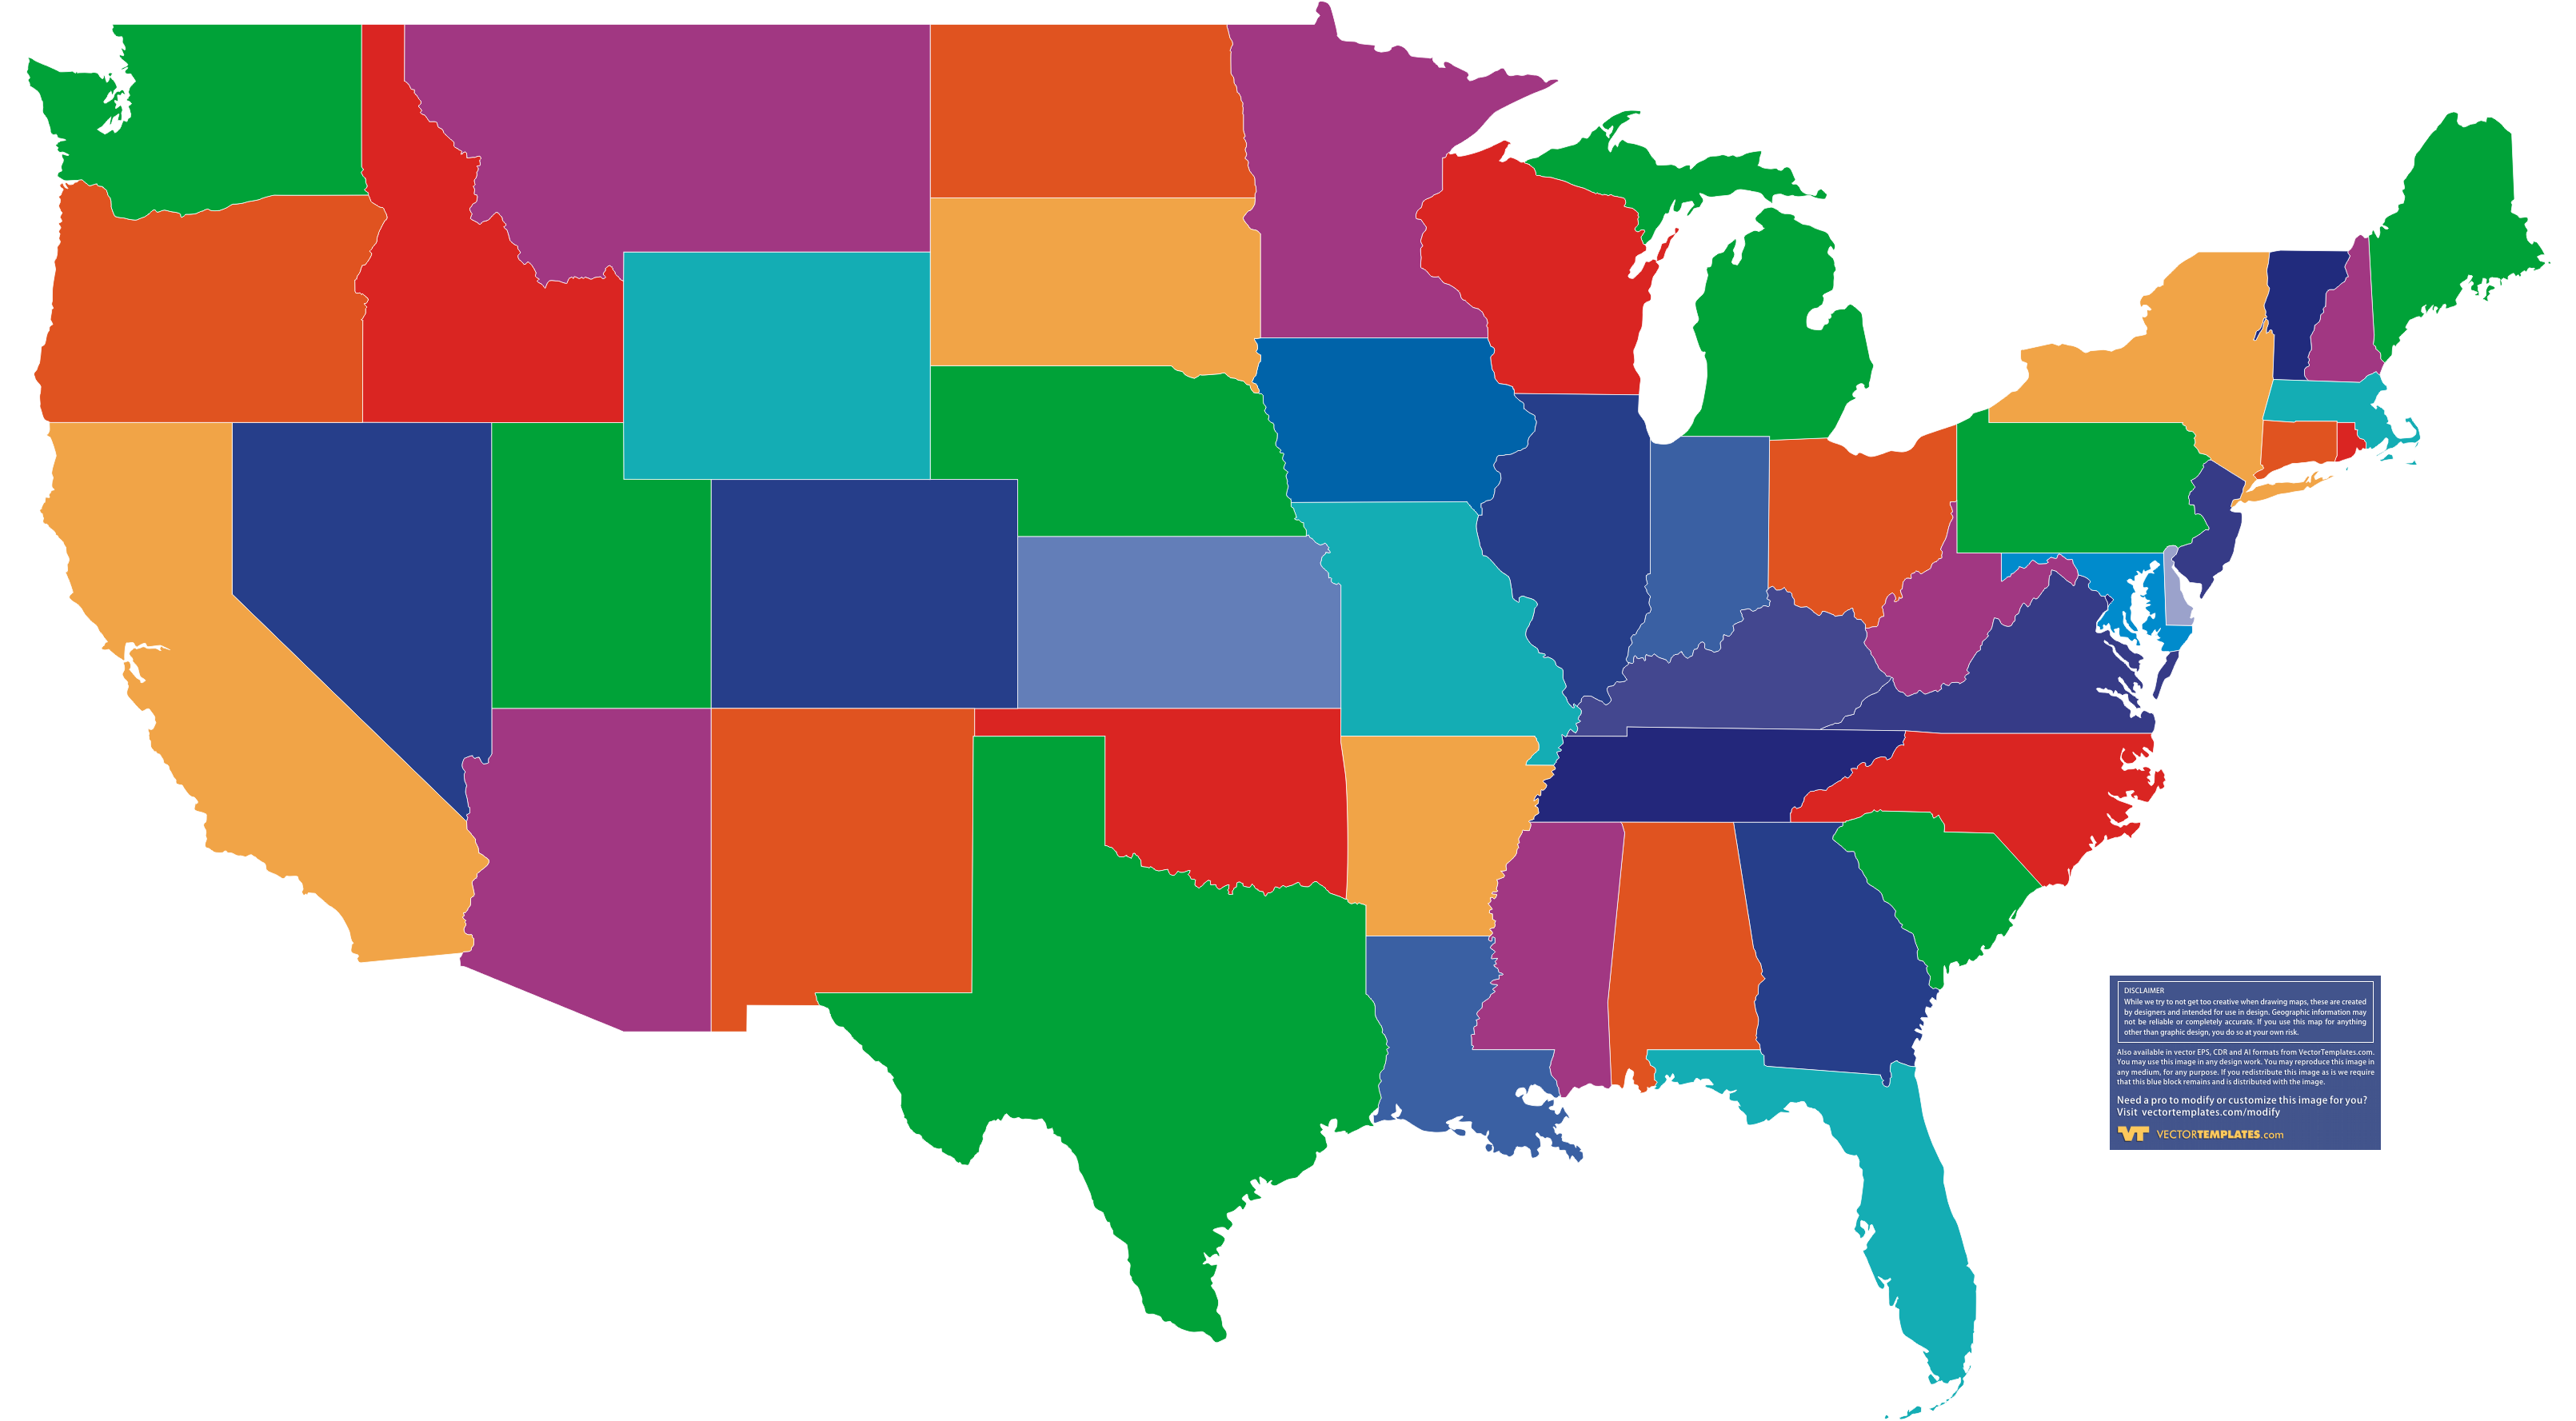 Usa Map Without States Www Proteckmachinery Com